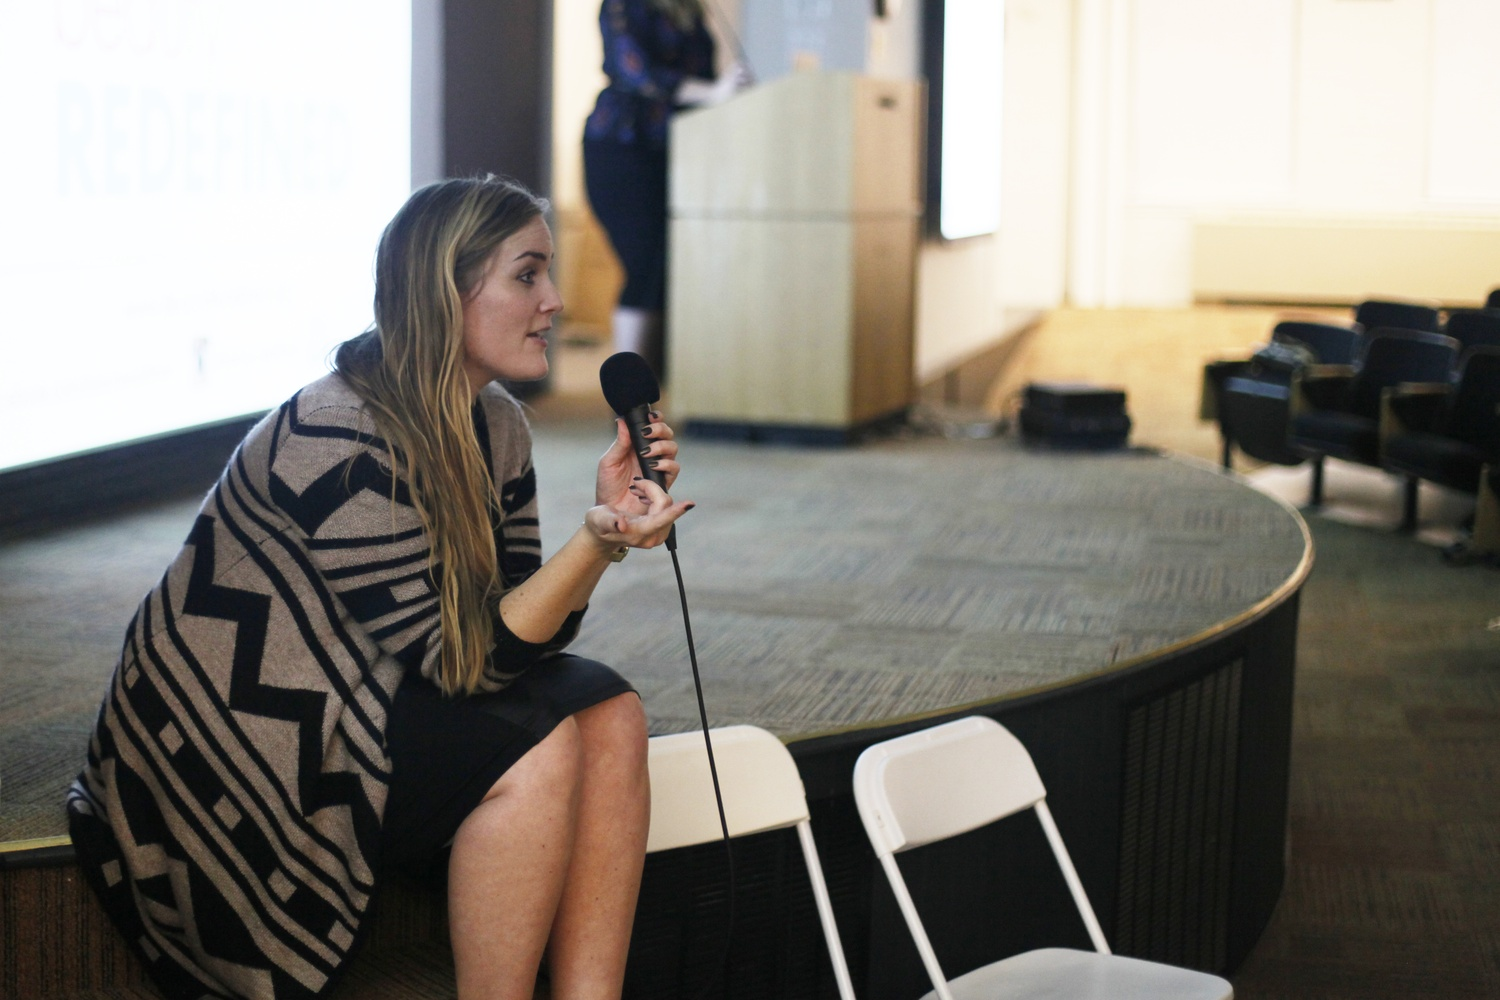 Lexie Kite leads the Q&A session of beautyREDEFINED in Geological Lecture Halls on Oct. 20. The presentation, organized by ECHO, was co-led by sister Lindsay Kite and focused on body image resilience.